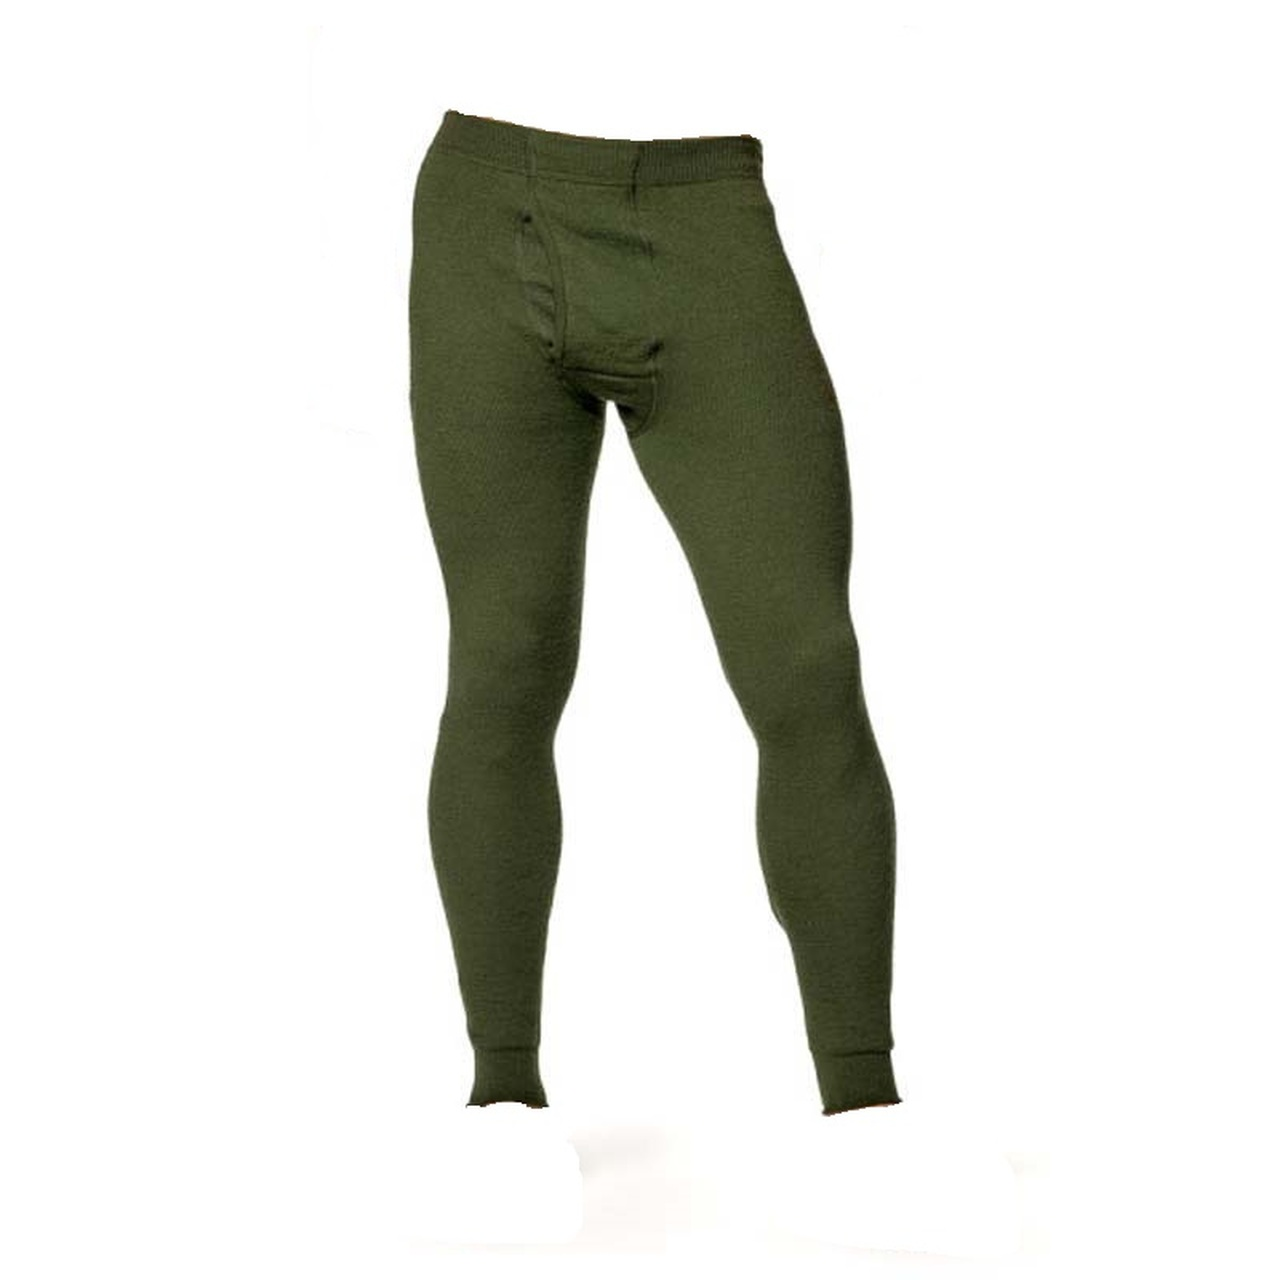 Surplus Canadian Forces Long Thermal Underwear - Green